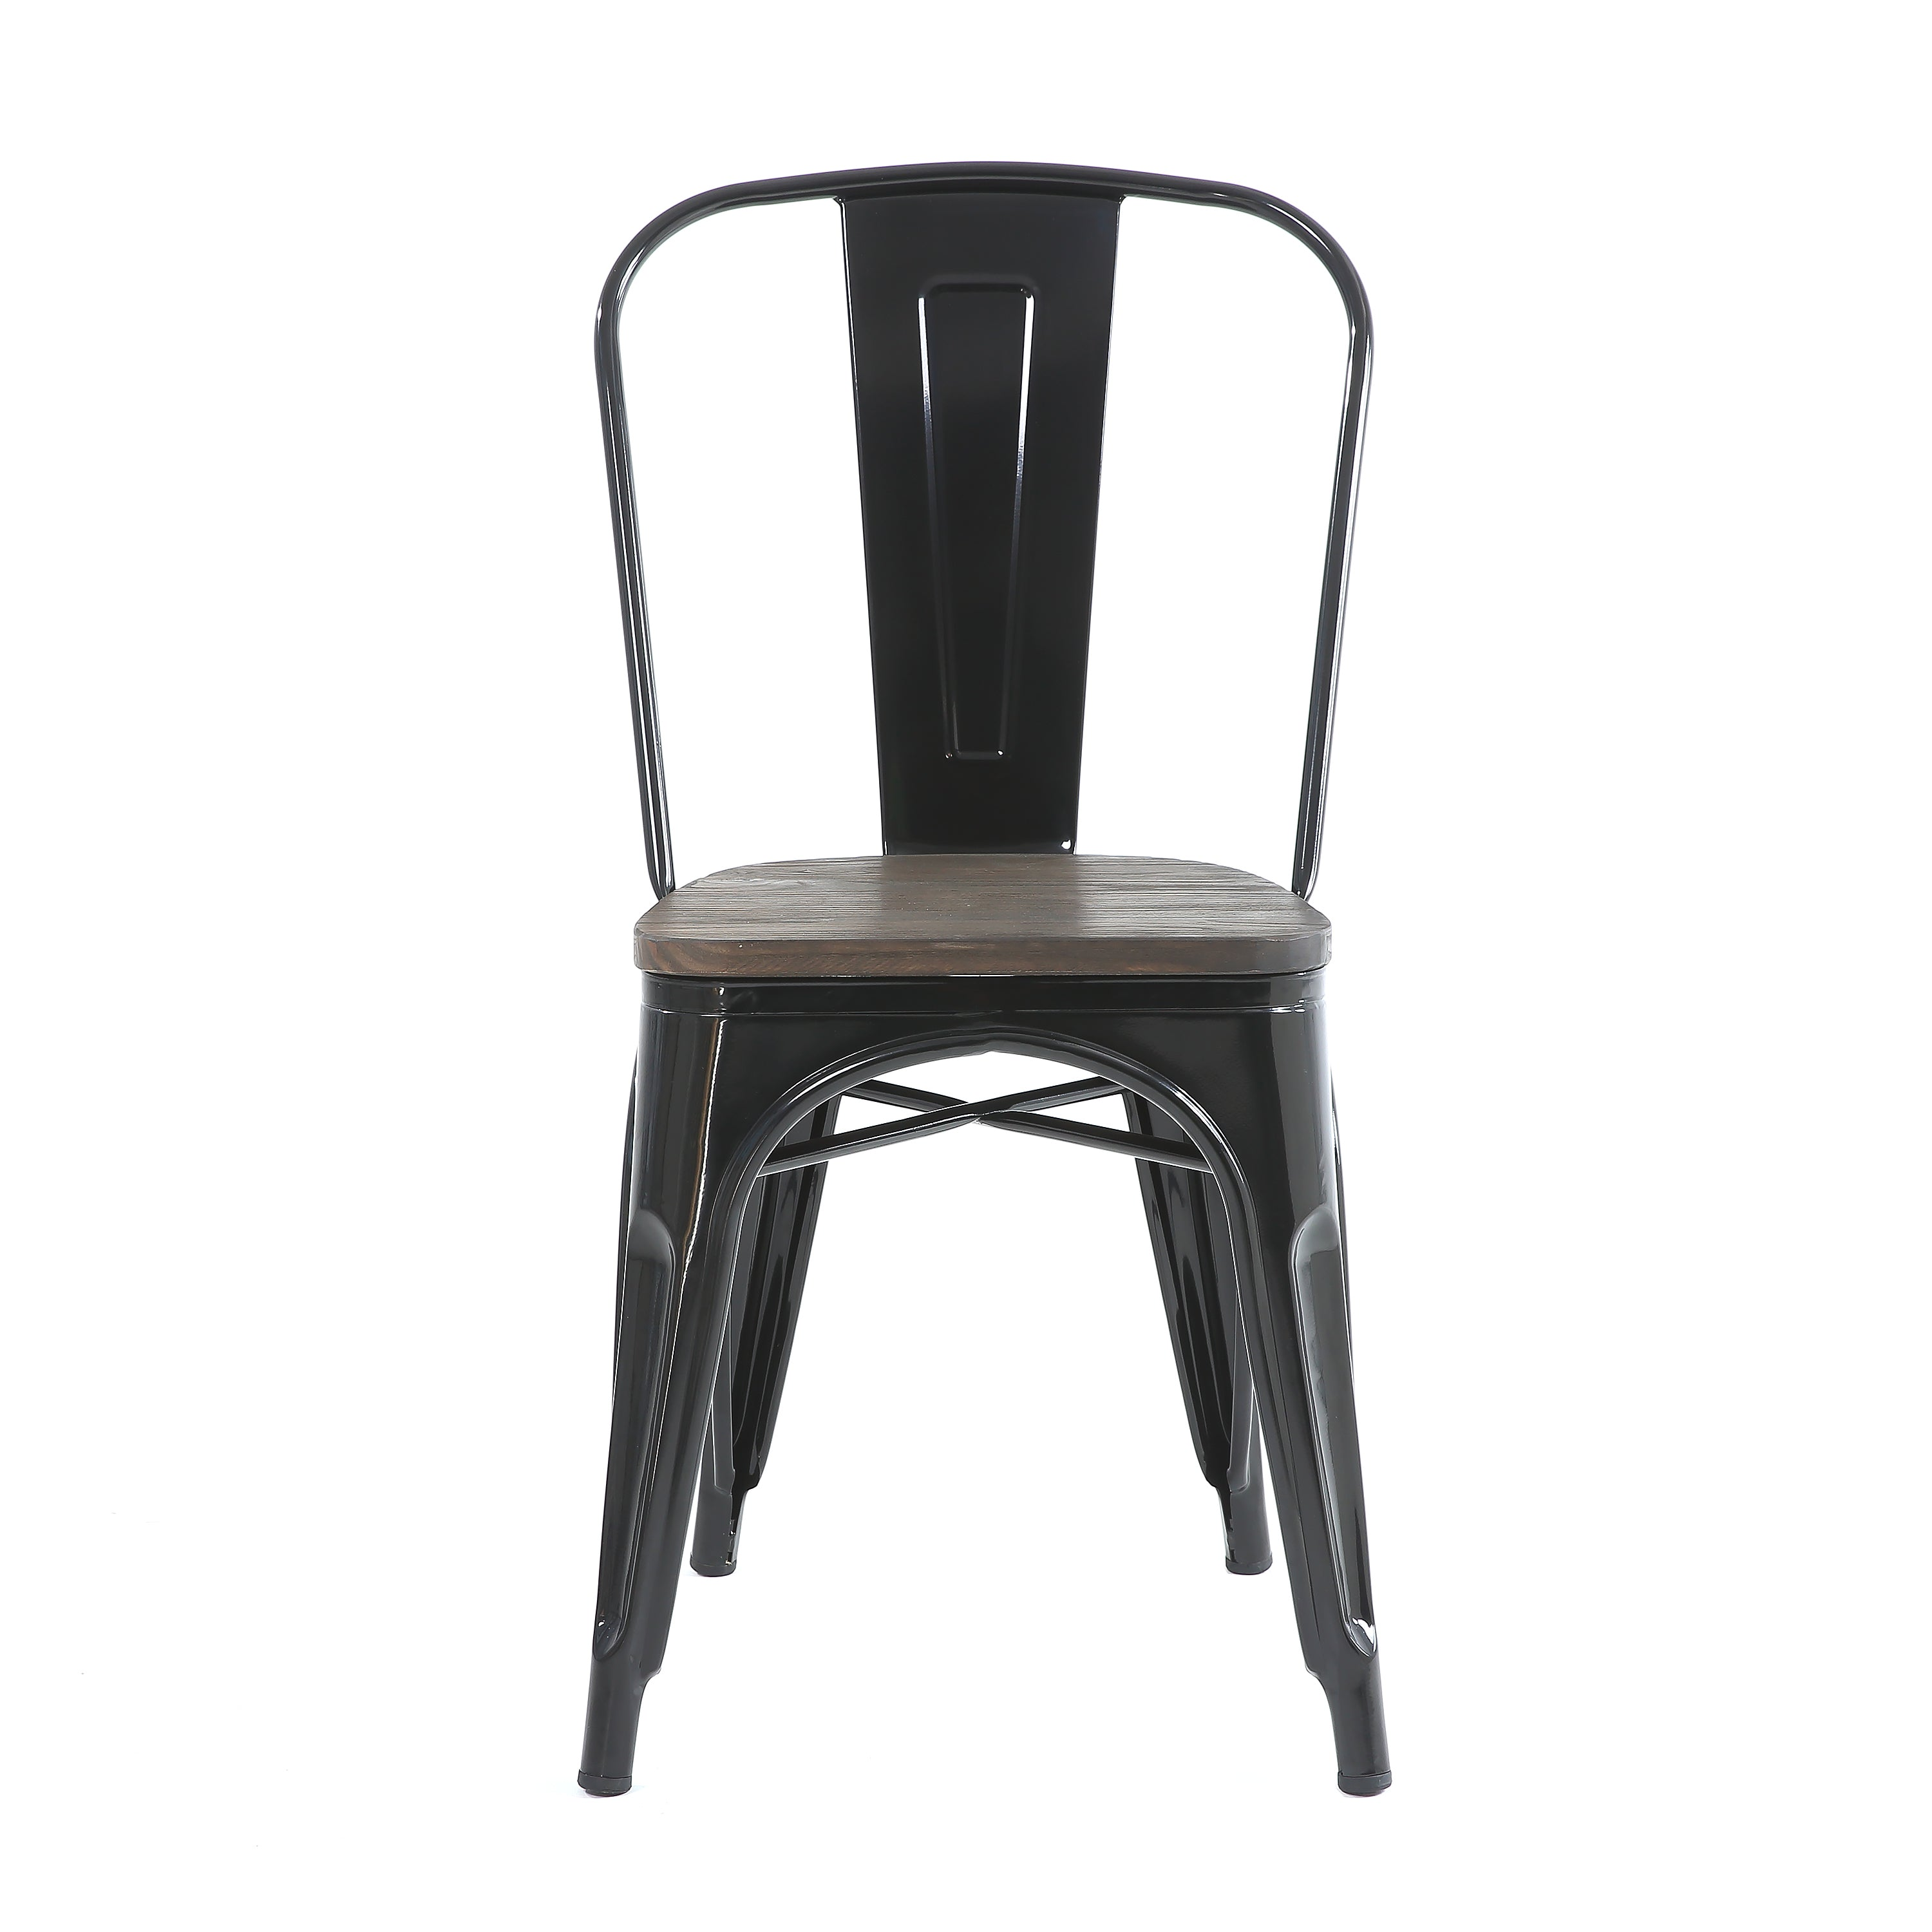 Buschman Set of 4 Black Wooden Seat Metal Dining Chairs, Indoor/Outdoor and Stackable